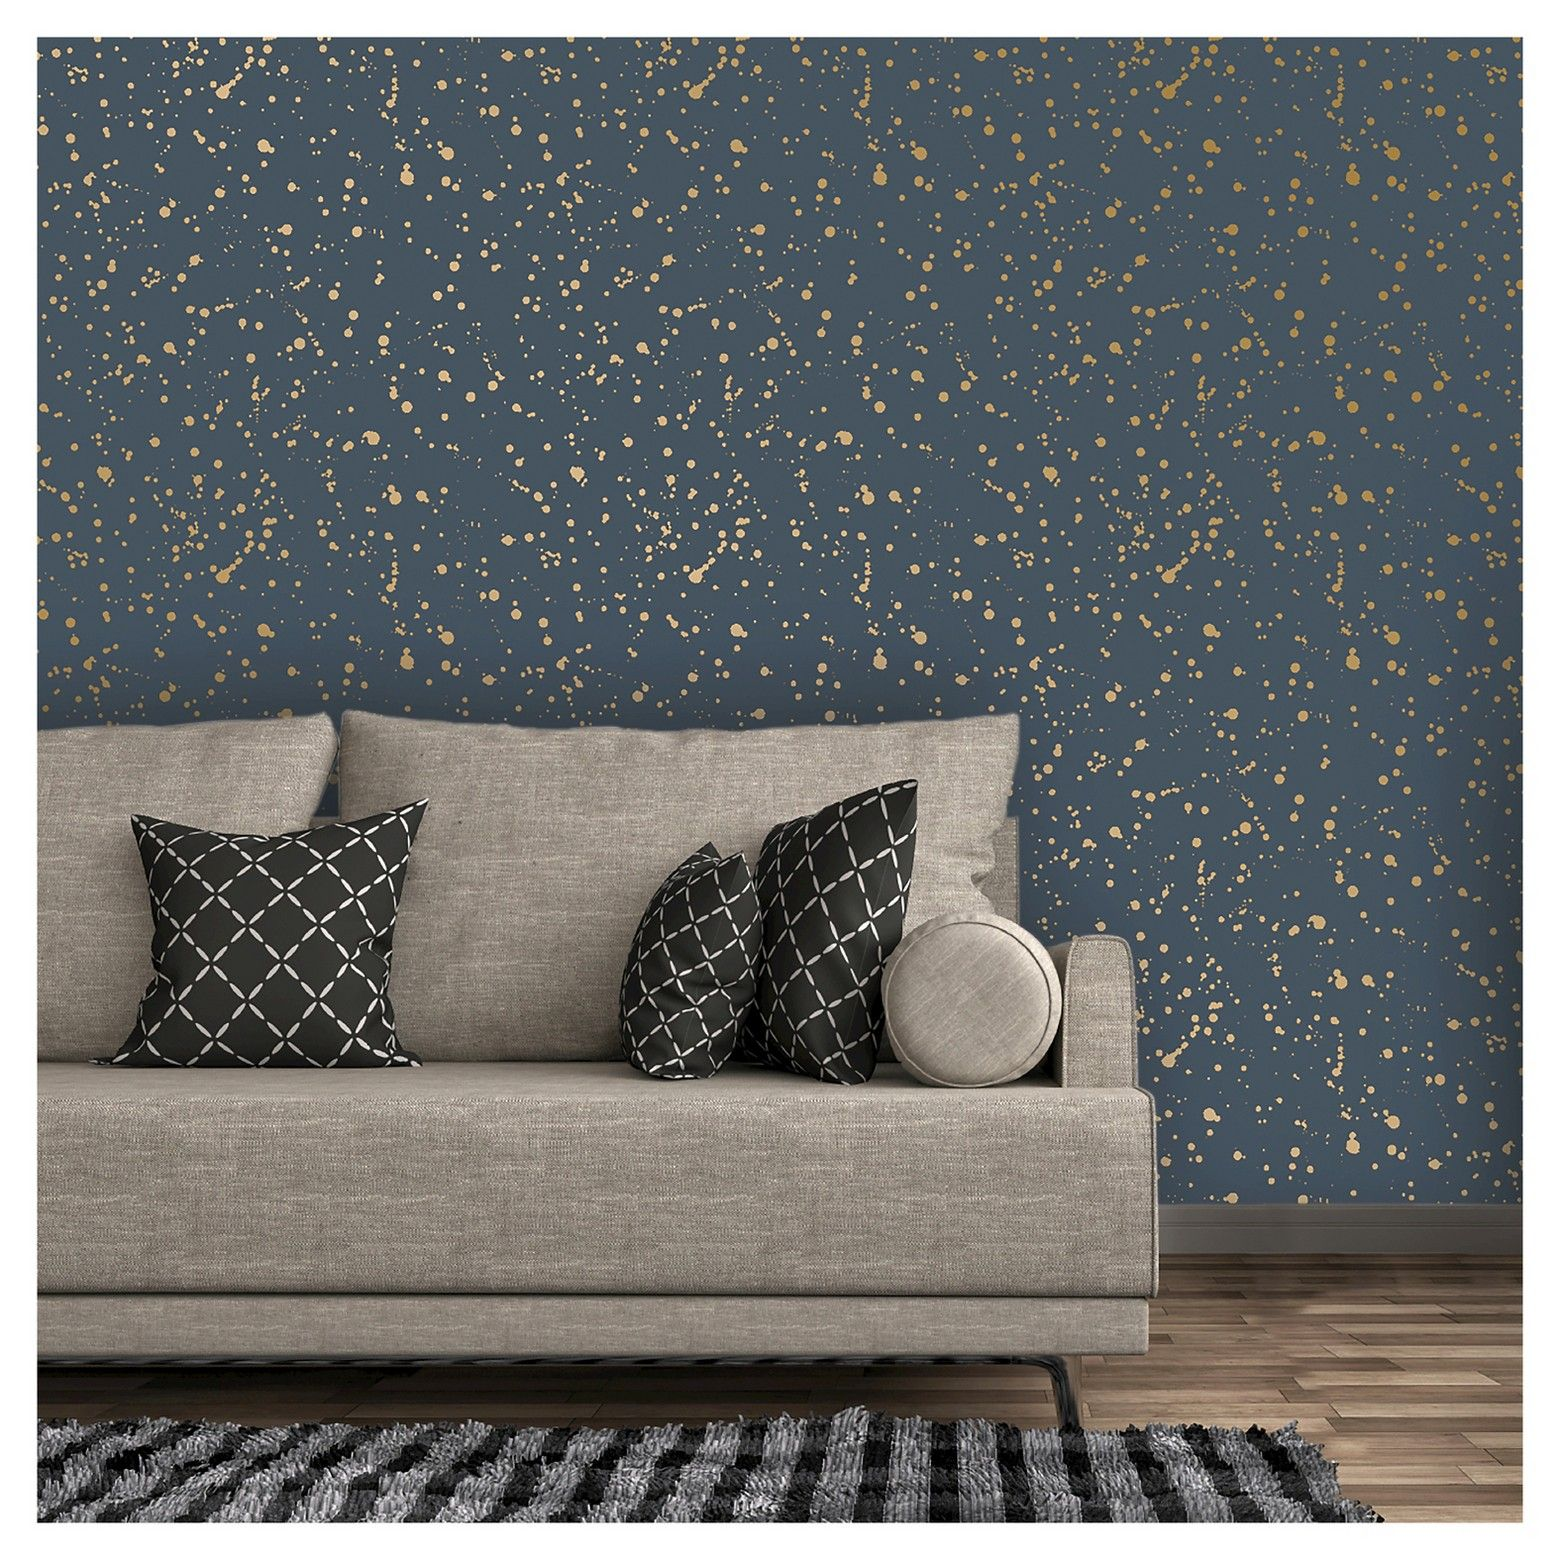 Celestial Peel And Stick Wallpaper Navy Gold Opalhouse Peel And Stick Wallpaper Flat Paint Wallpaper Project